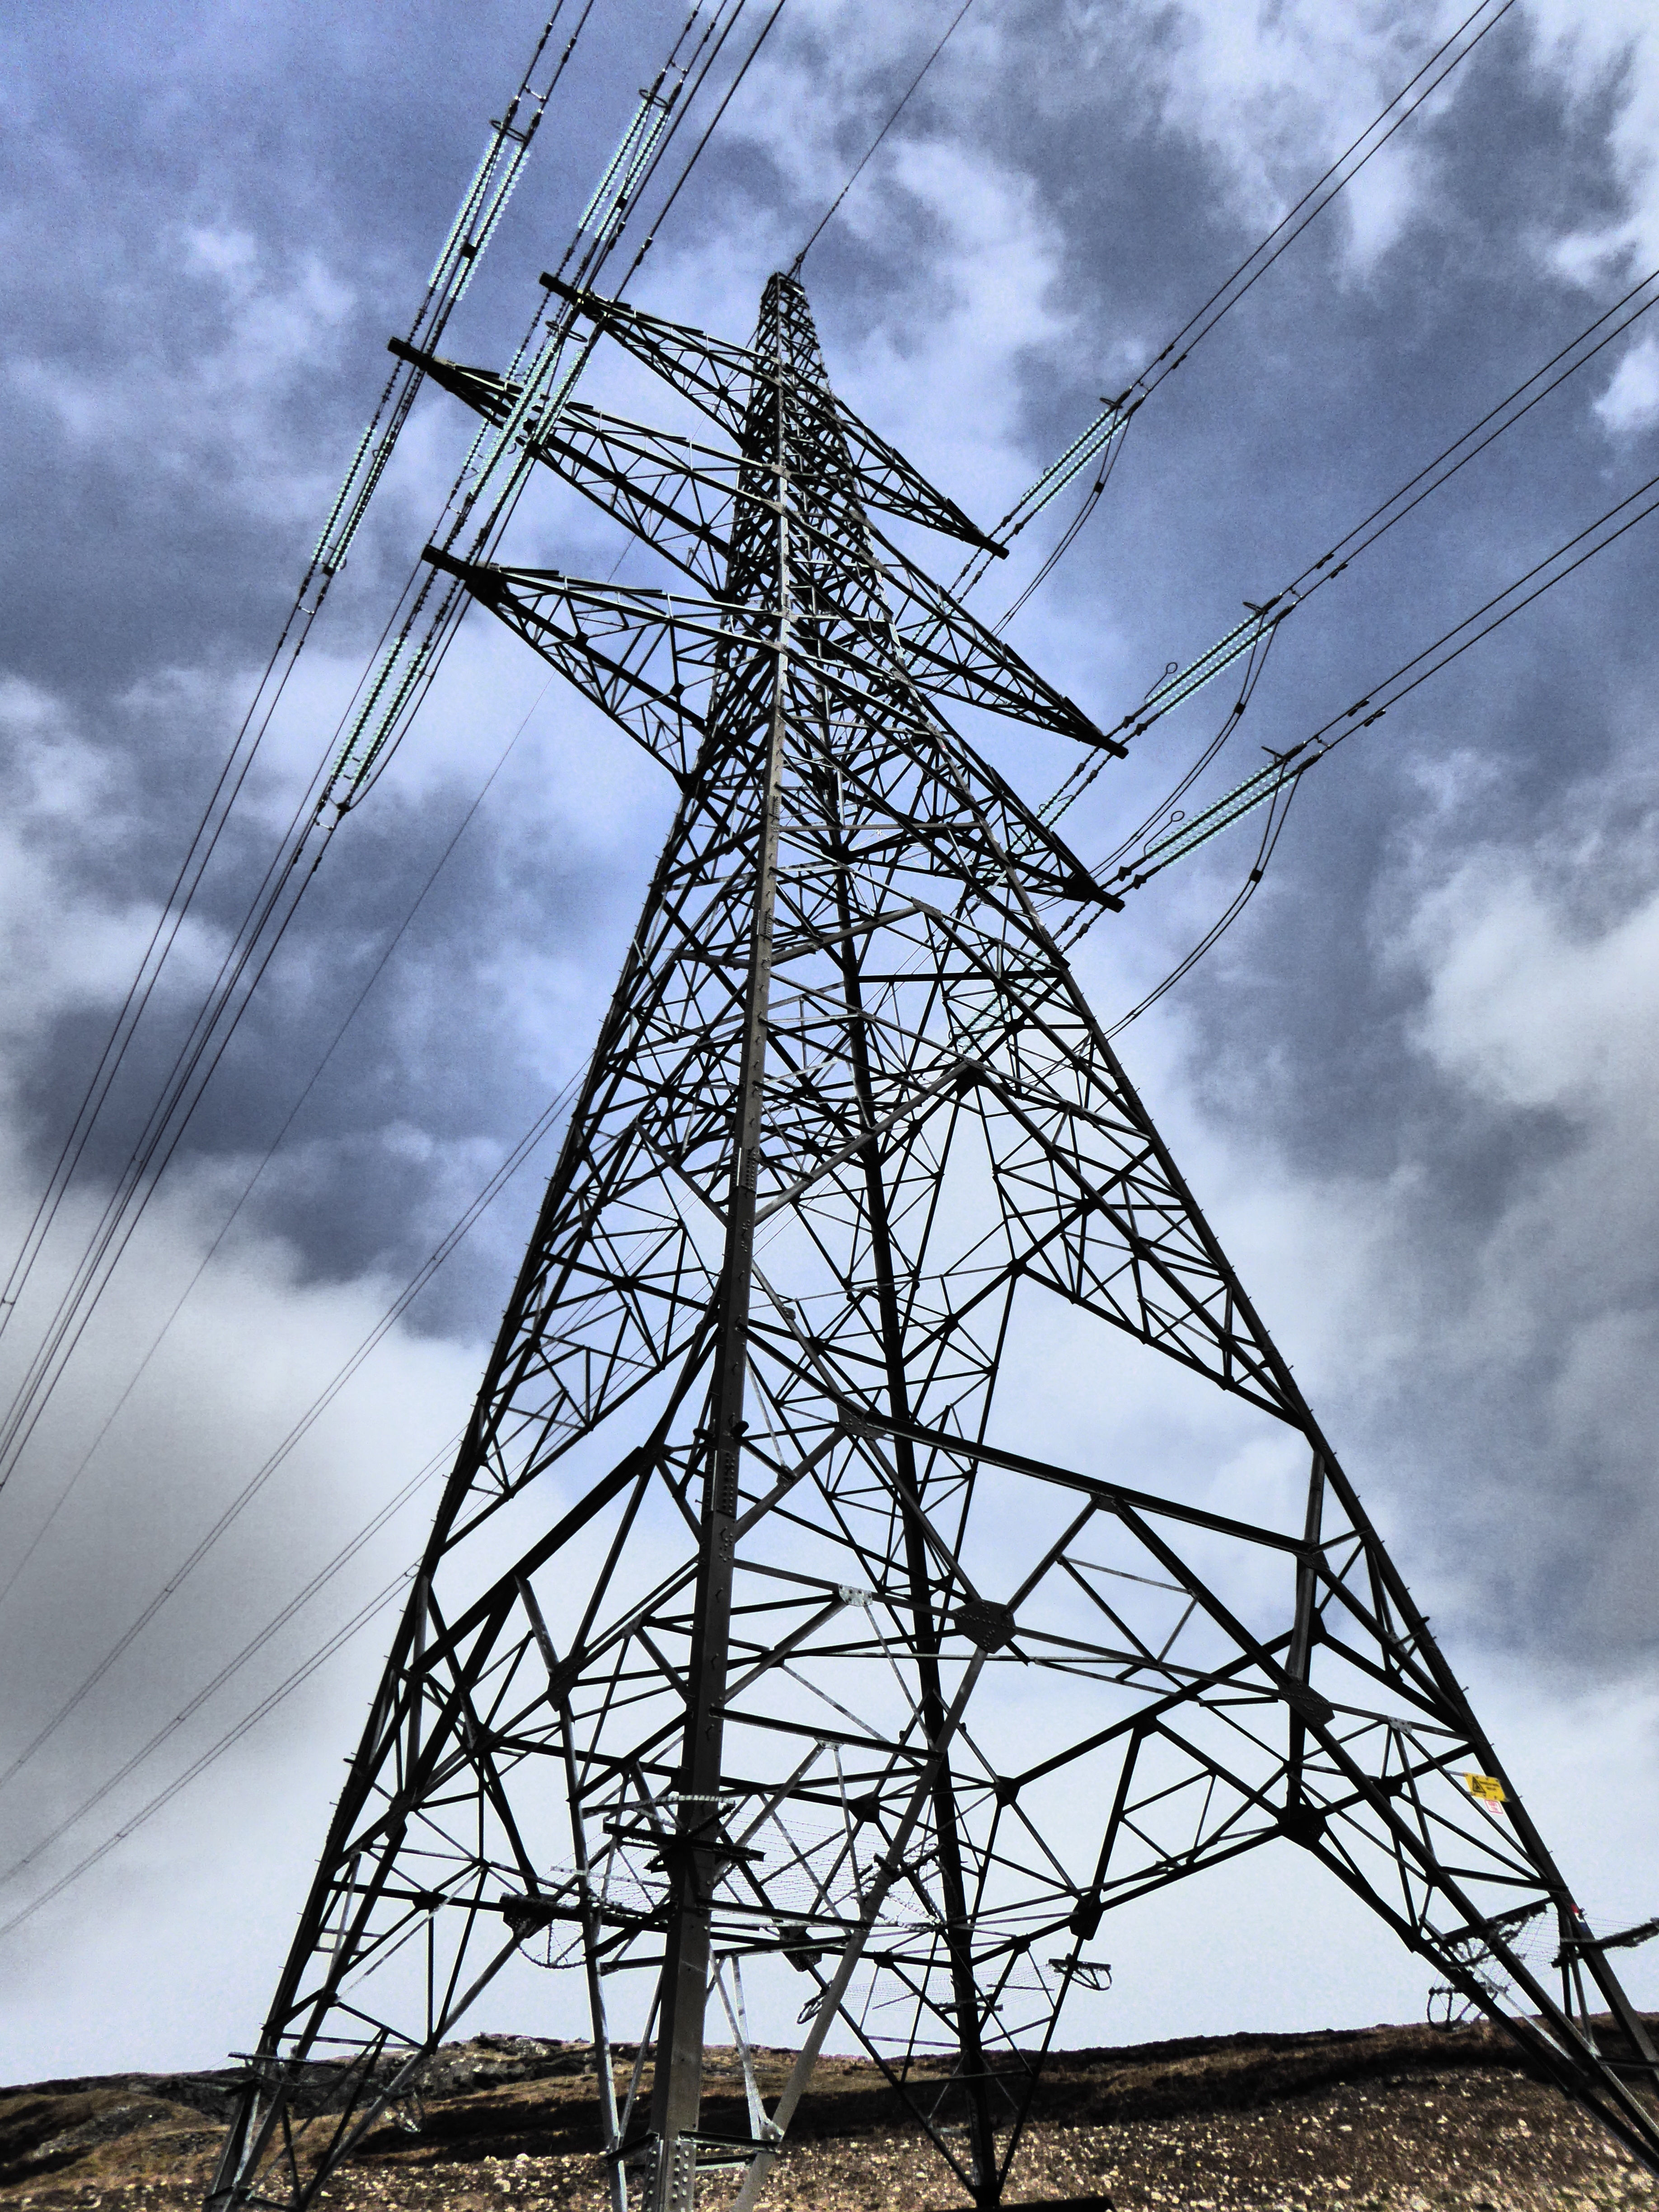 Where can I buy a pylon for home 45